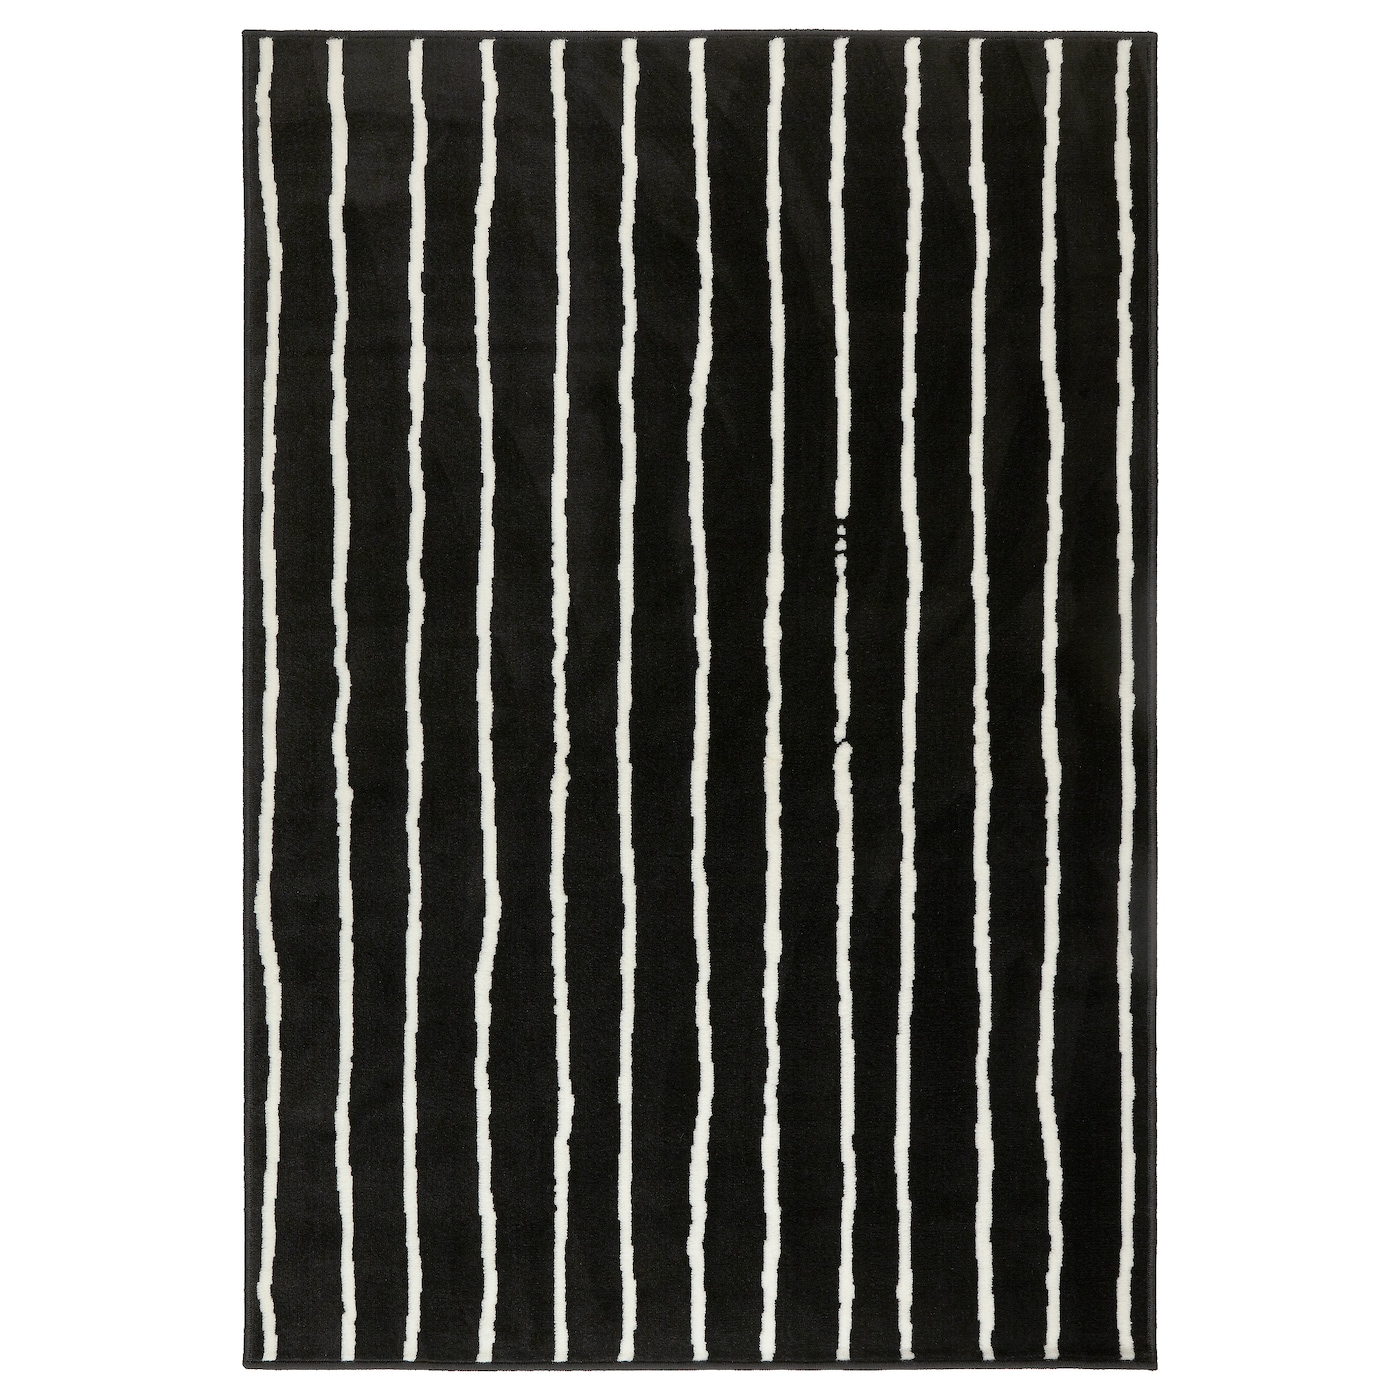 Design Black Rug rug low pile blackwhite 133x195 cm ikea the thick dampens sound and provides a soft surface